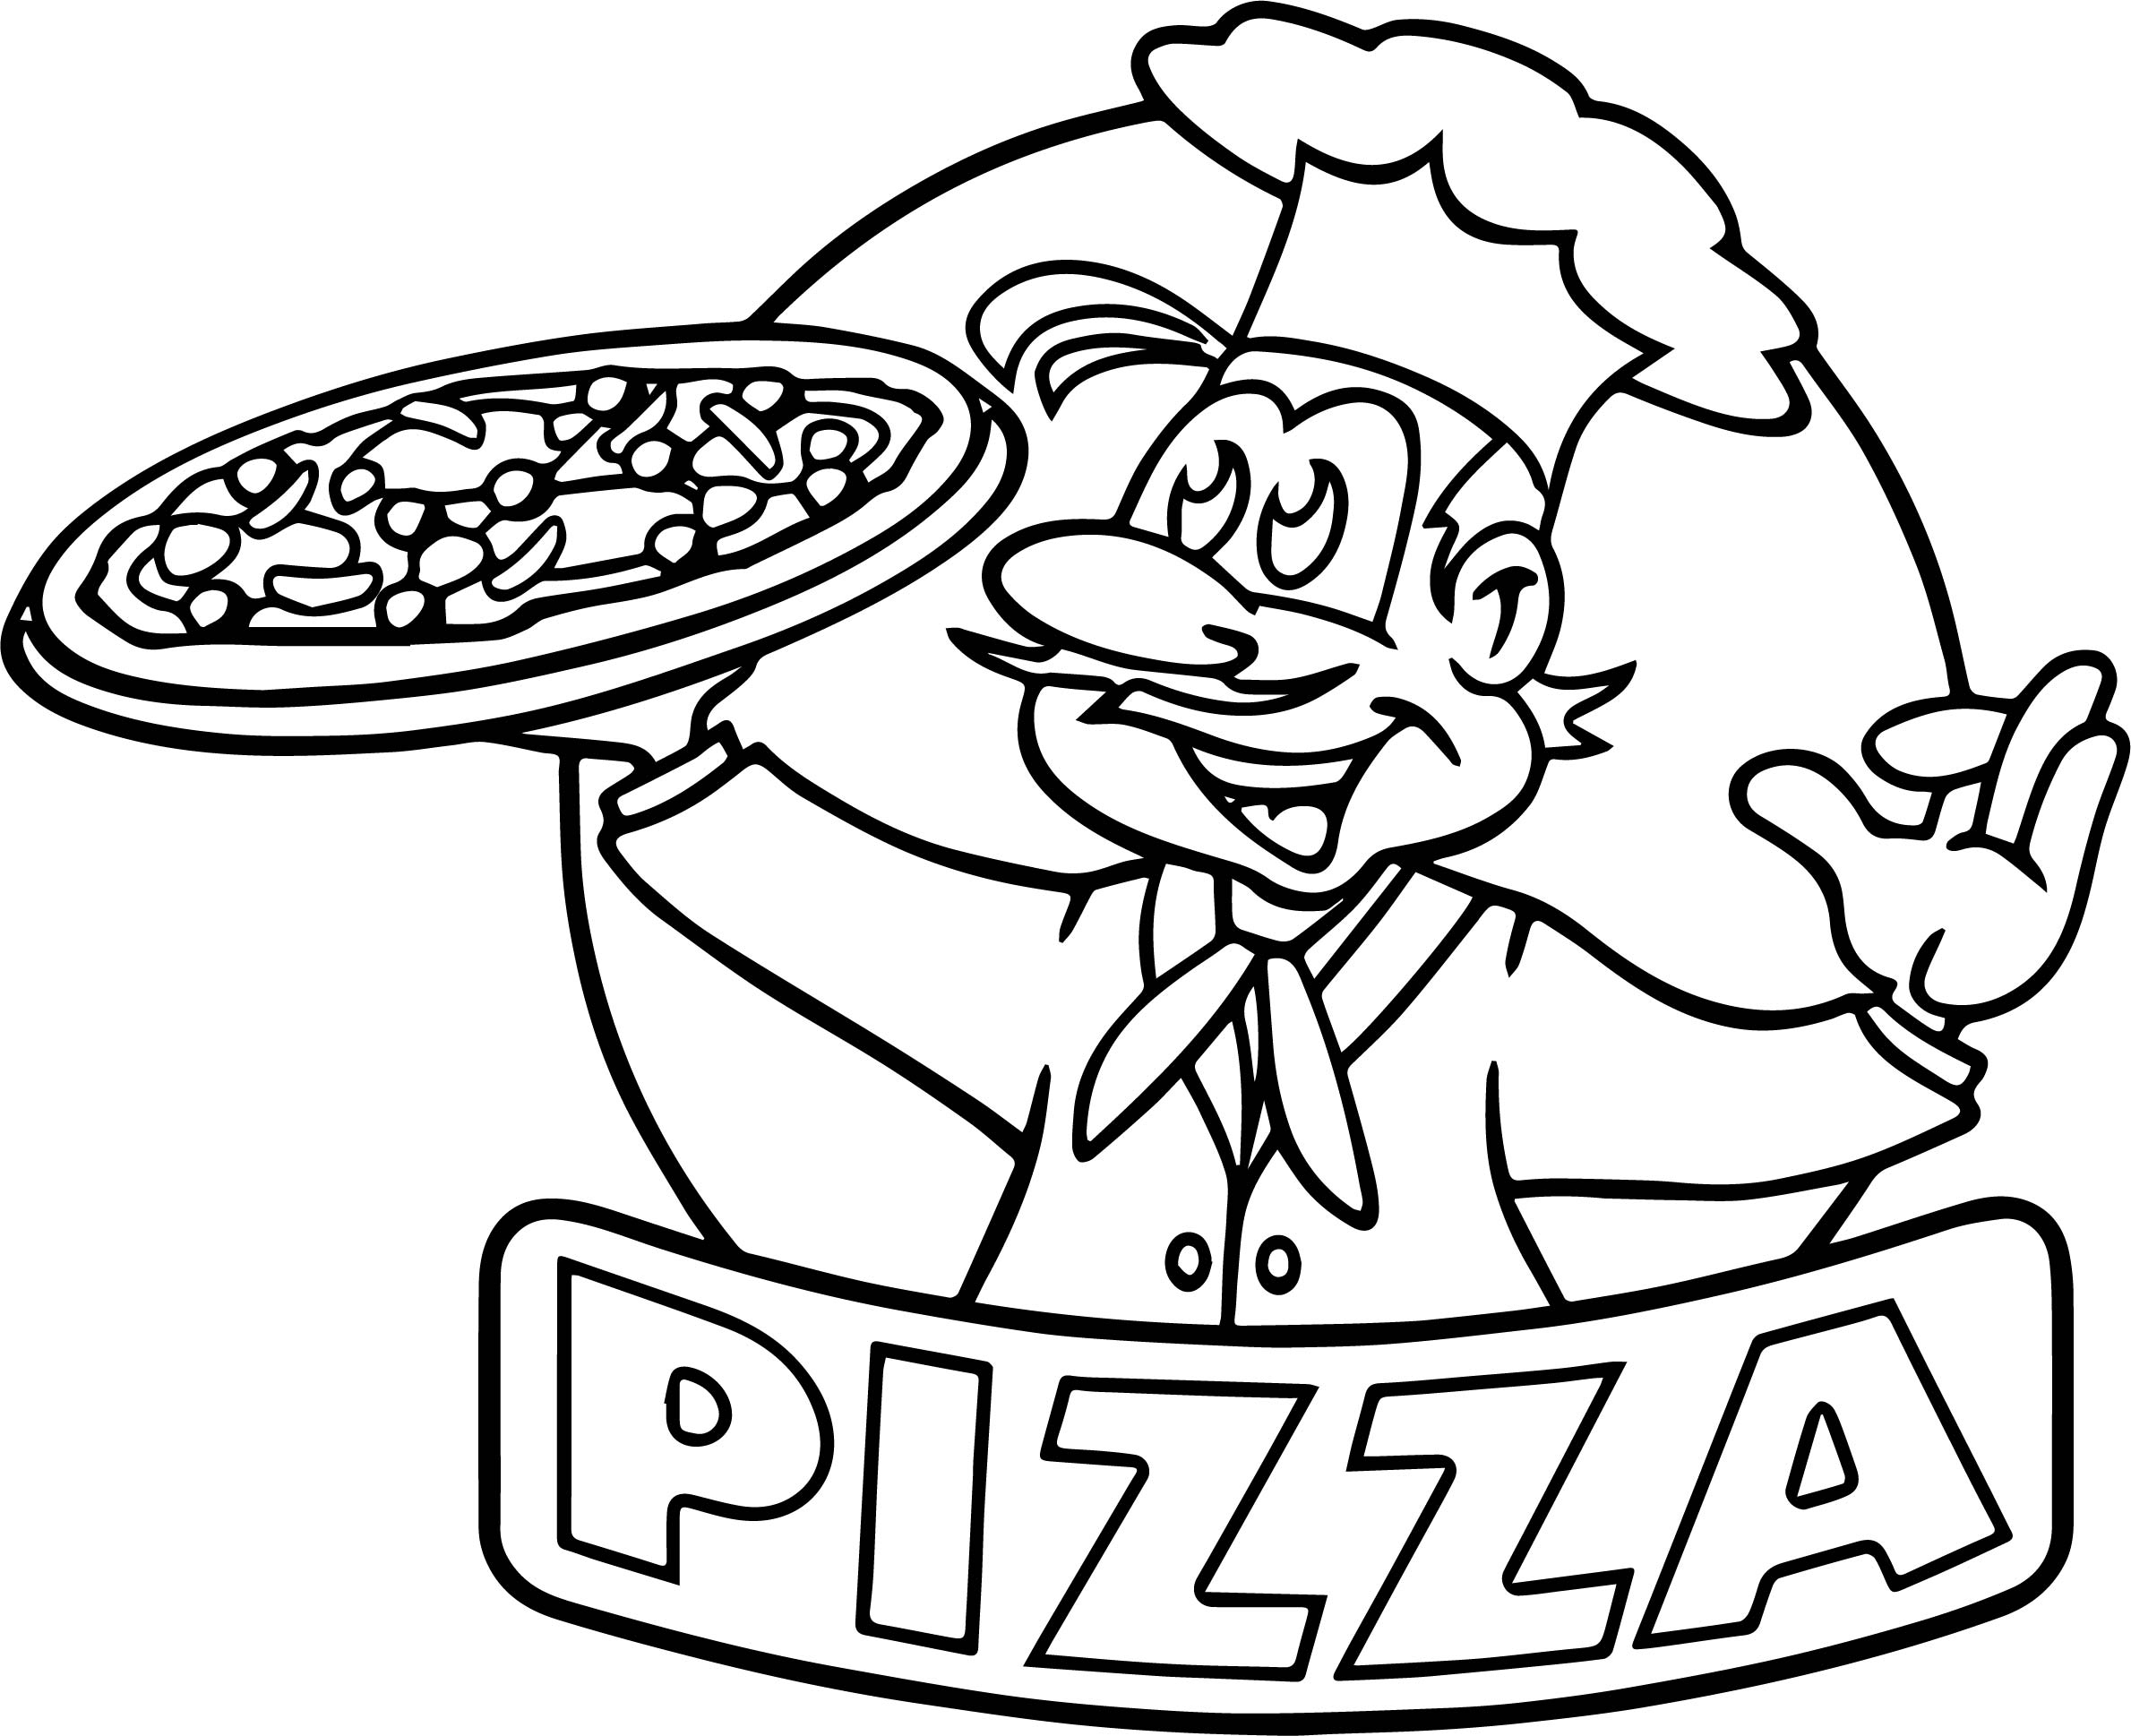 2379x1938 Pizza Coloring Pages Printable Coloring Pages